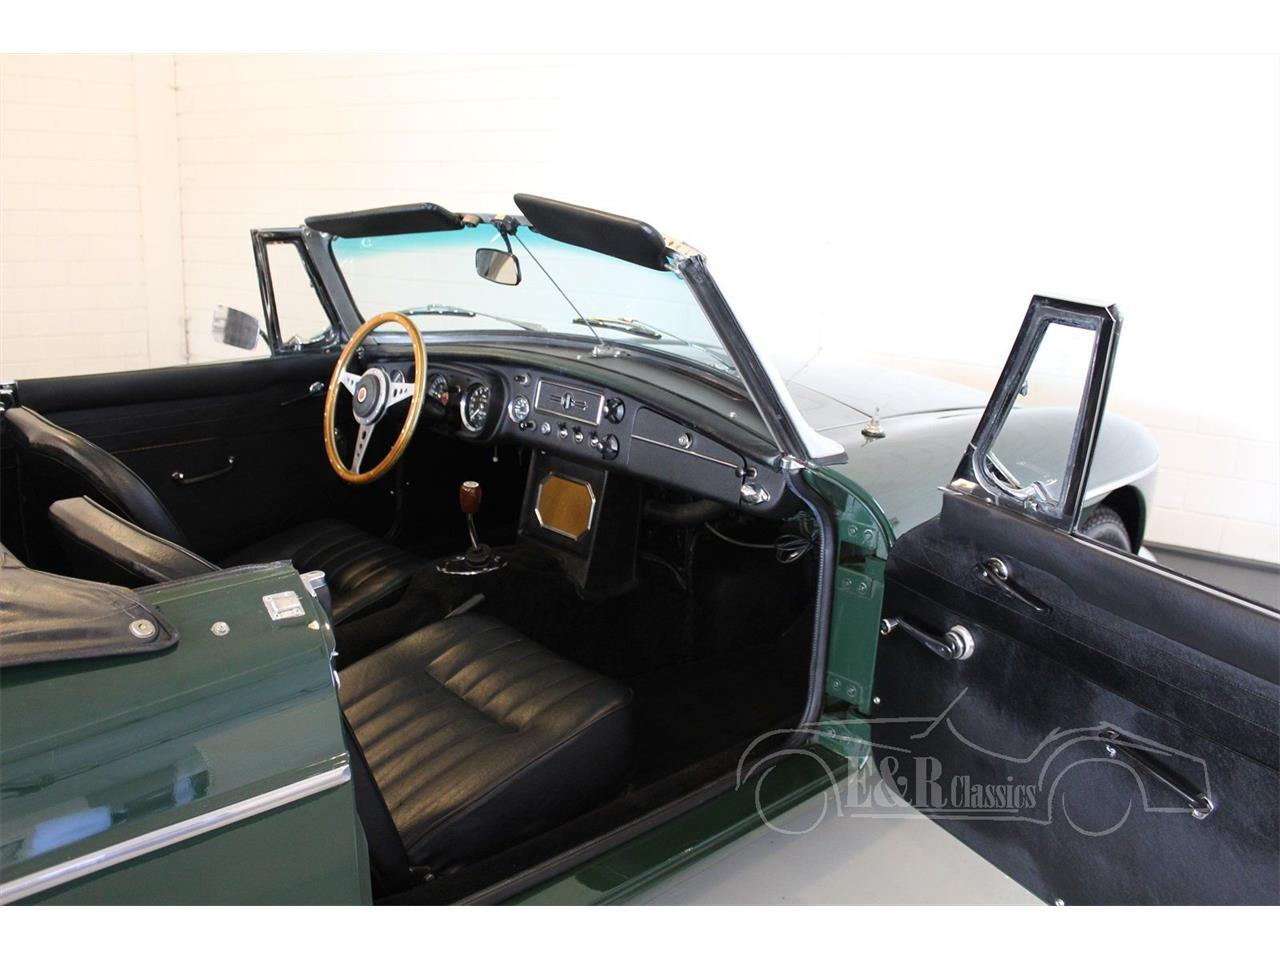 Large Picture of Classic 1964 MG MGB - $27,950.00 Offered by E & R Classics - Q178